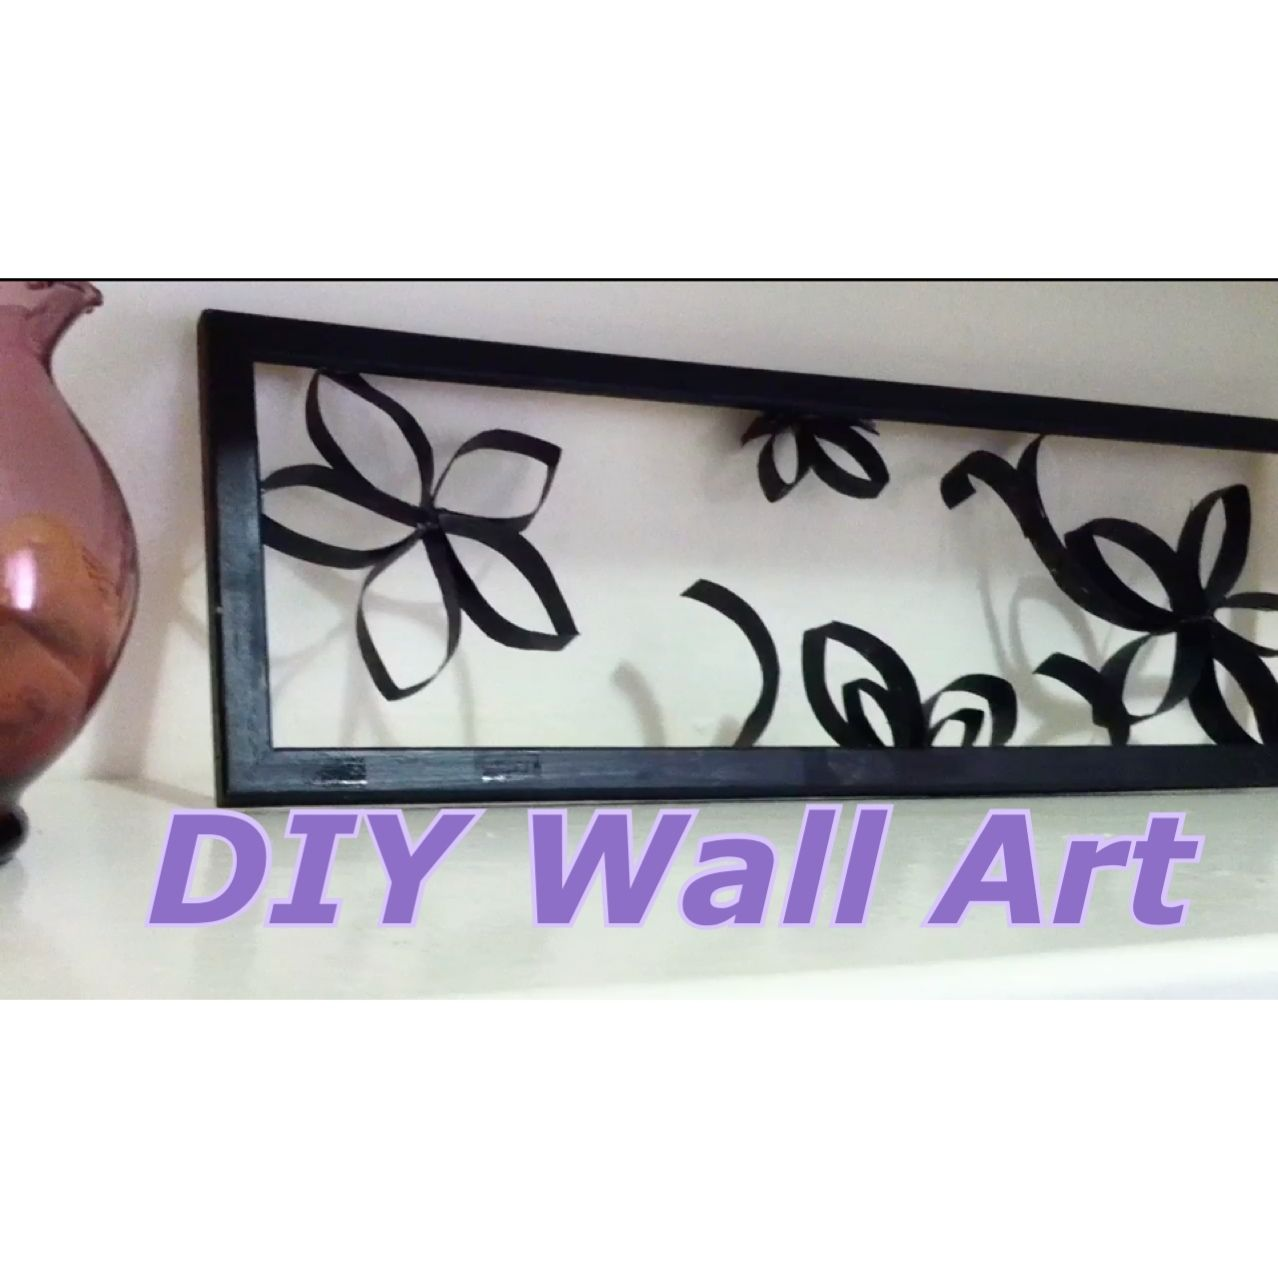 DIY Wall Art, I've seen this idea on Pinterest and decided to give it ago! More than pleased with the great results! Full tutorial here :)